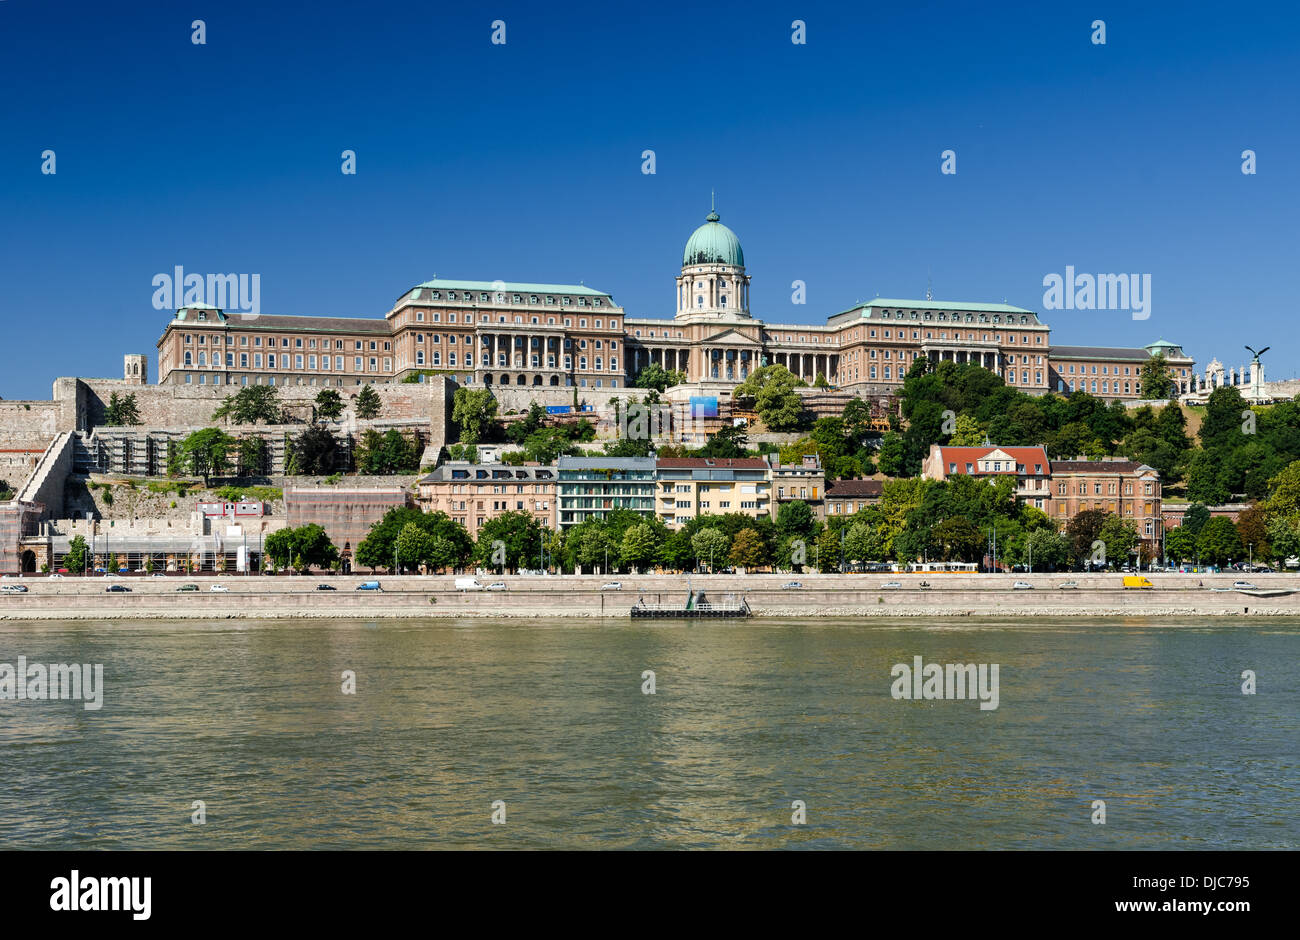 View of Buda Castle from Danube River. Royal Palace of Buda was built on the southern Castle Hill, Budapest, Hungary. Stock Photo